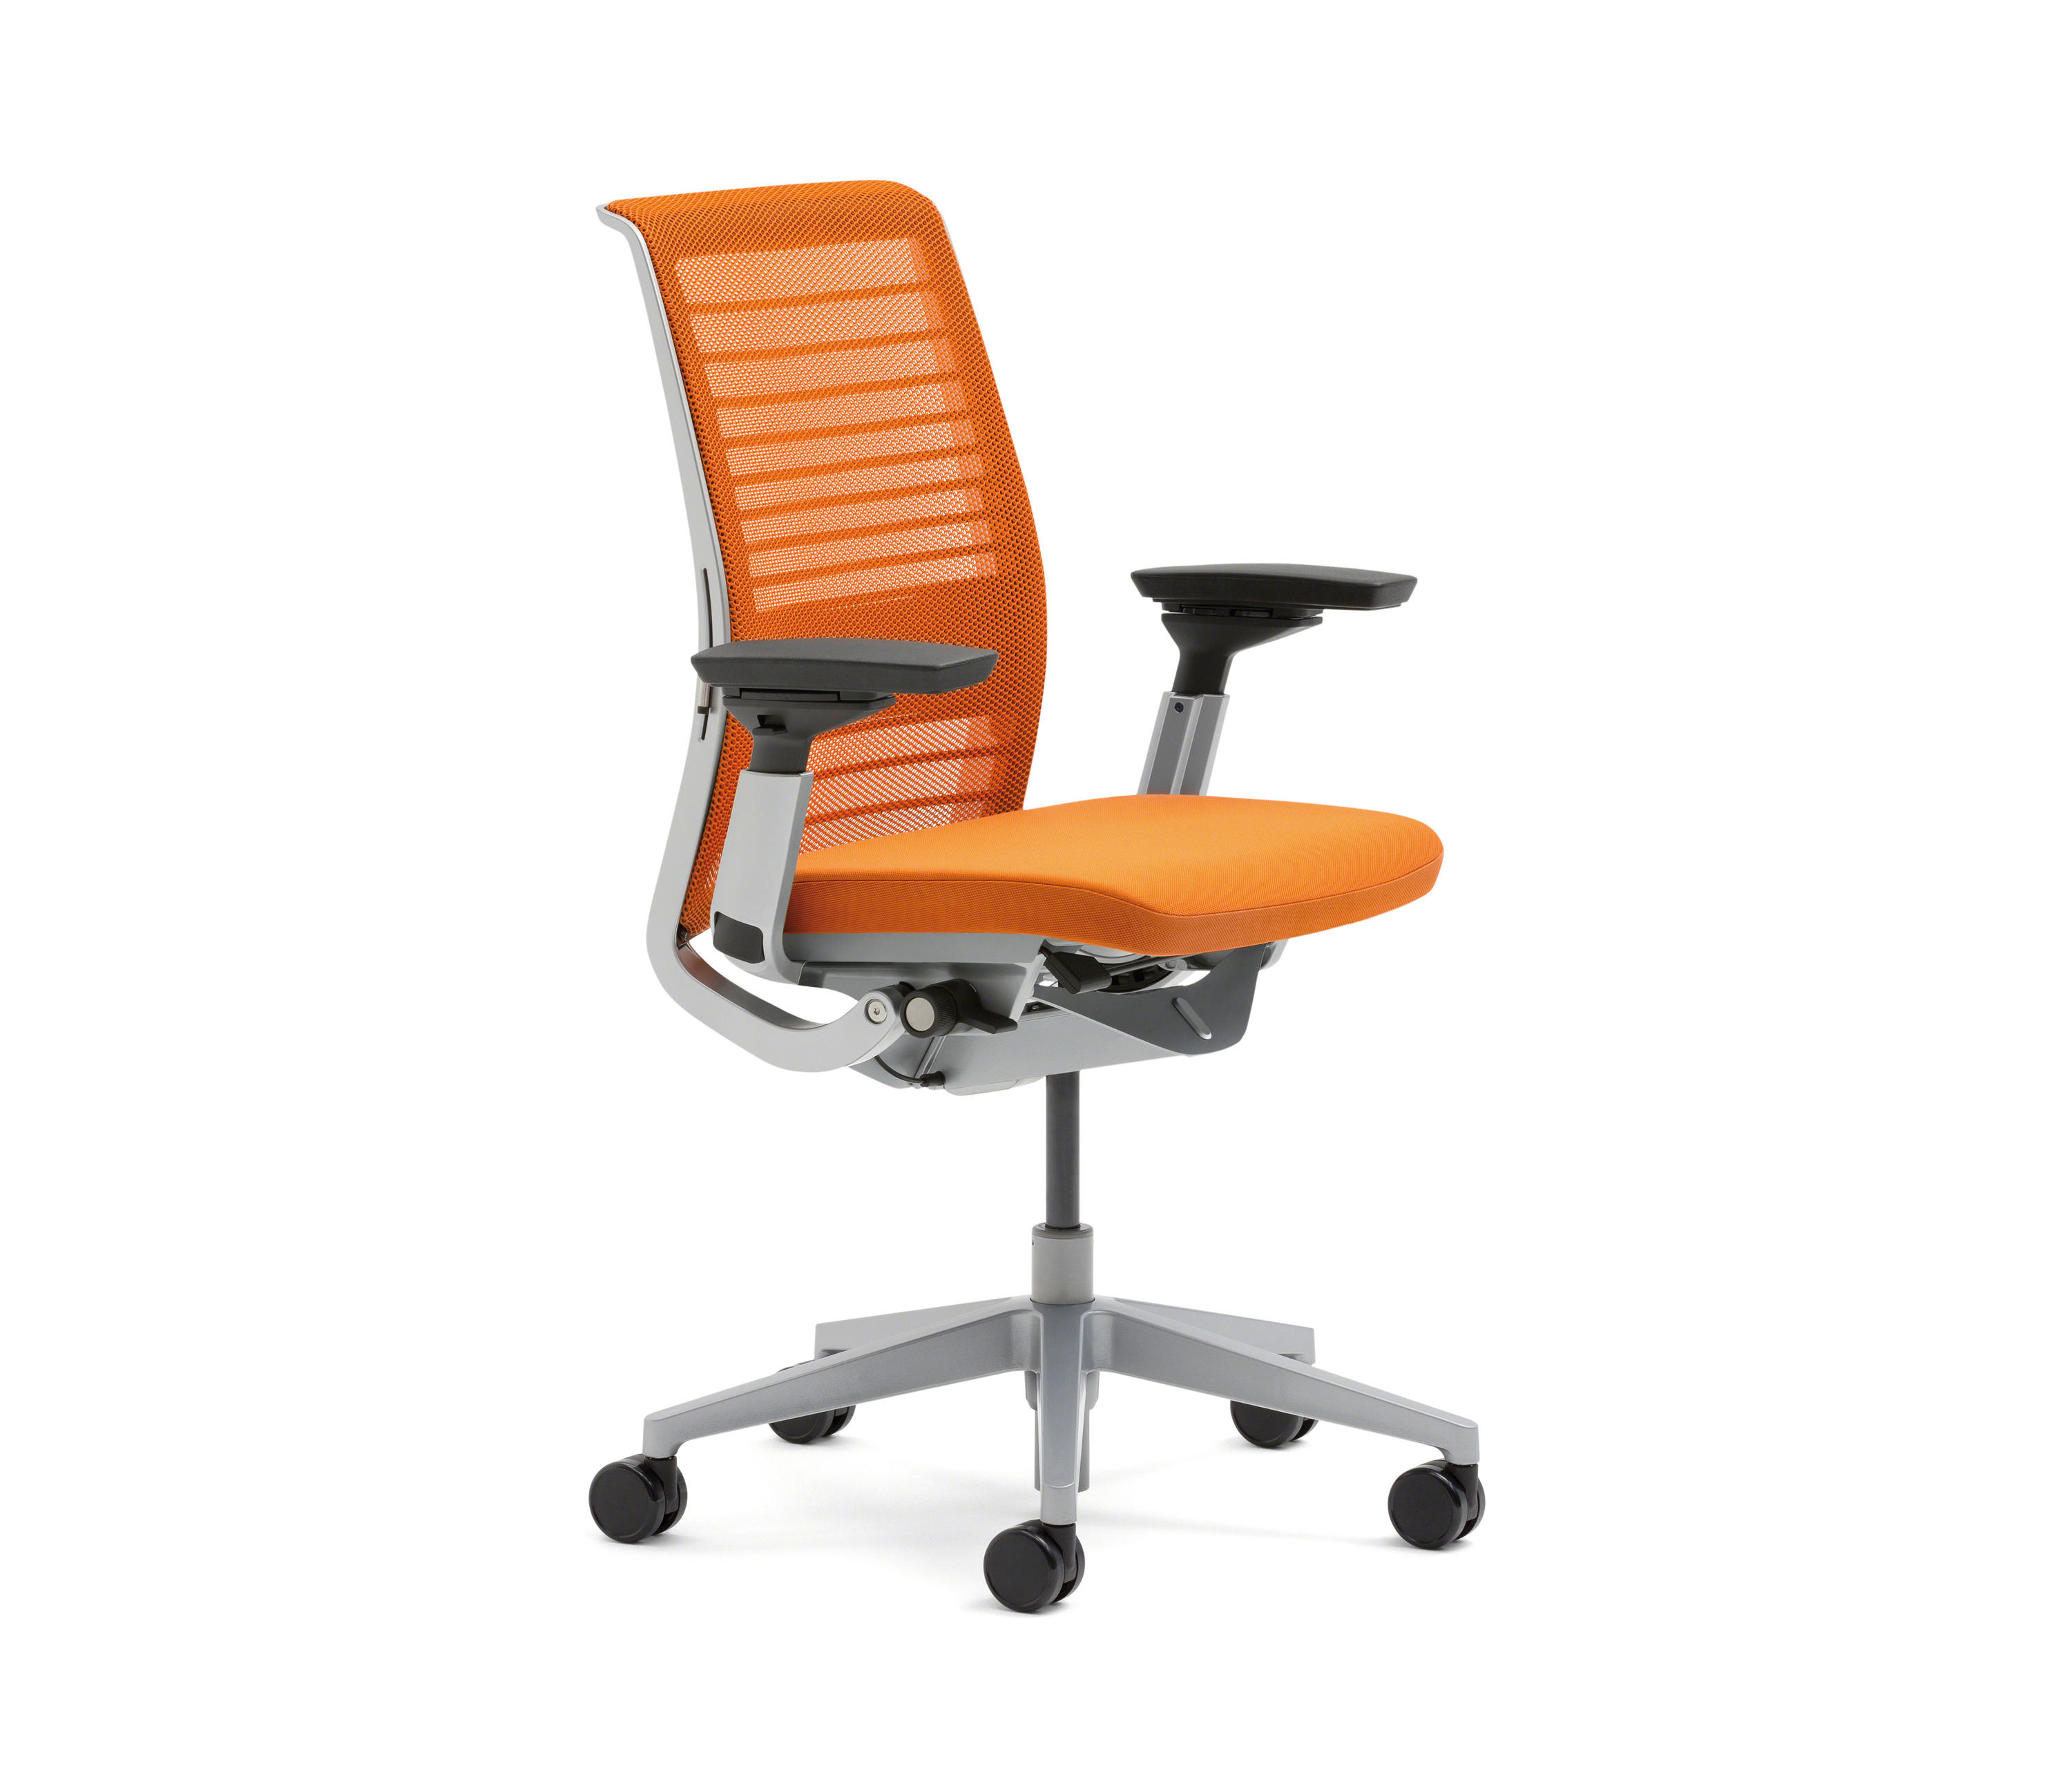 Think Chair Office Chairs From Steelcase Architonic